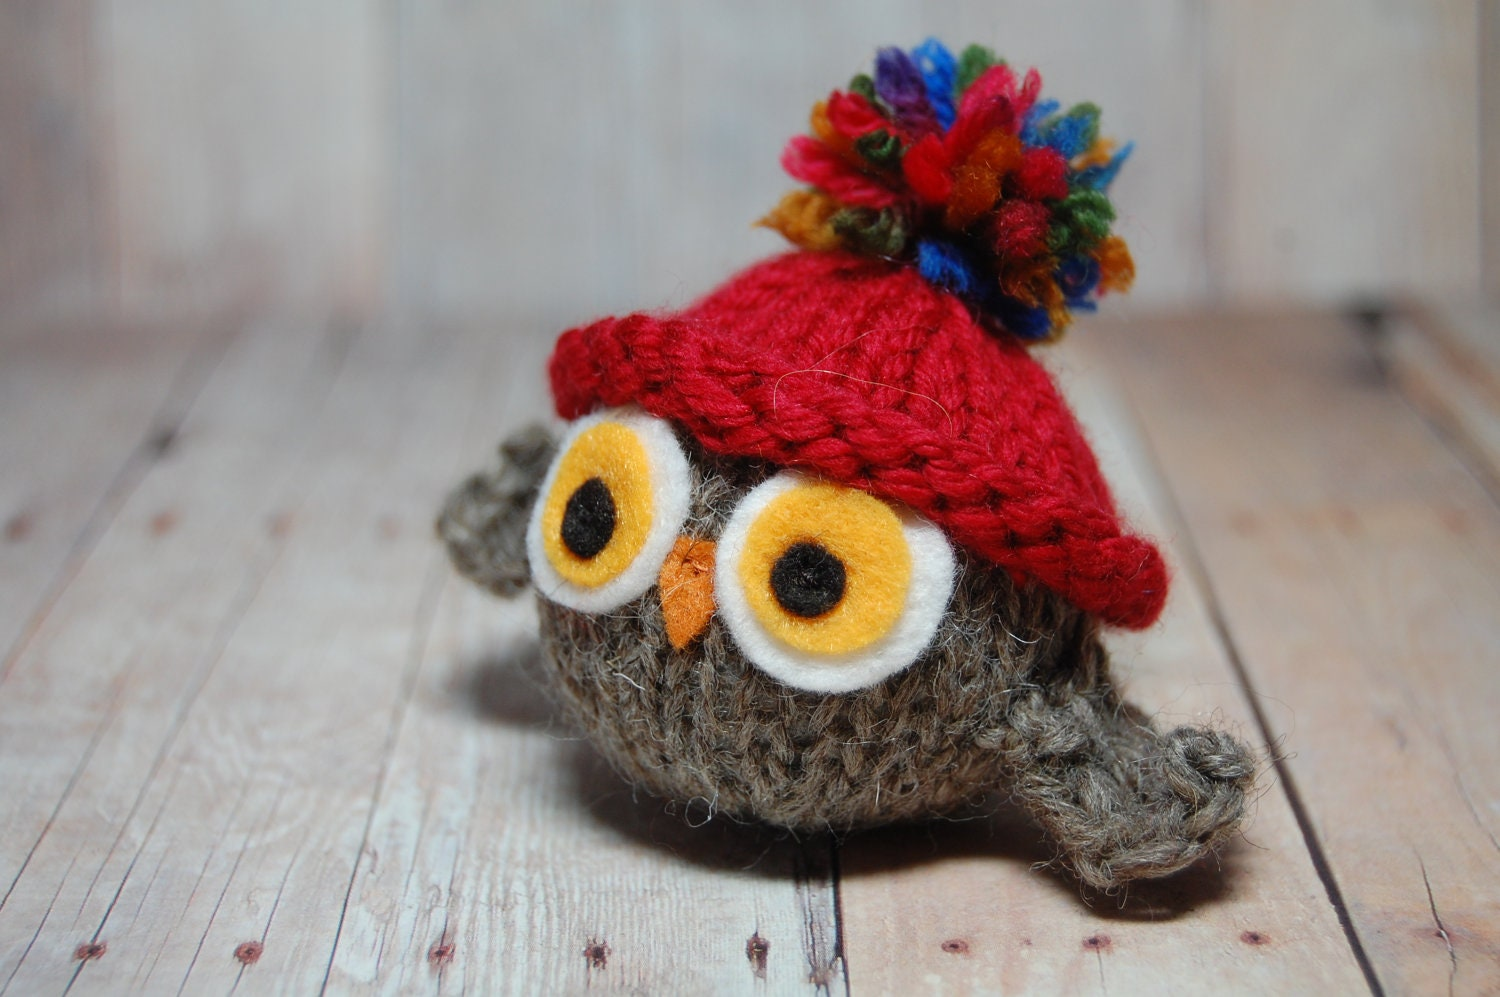 Knitting Patterns For Toy Hats : Knitted Toy Owl with Red Hat Valentine Holiday Toy Ornament